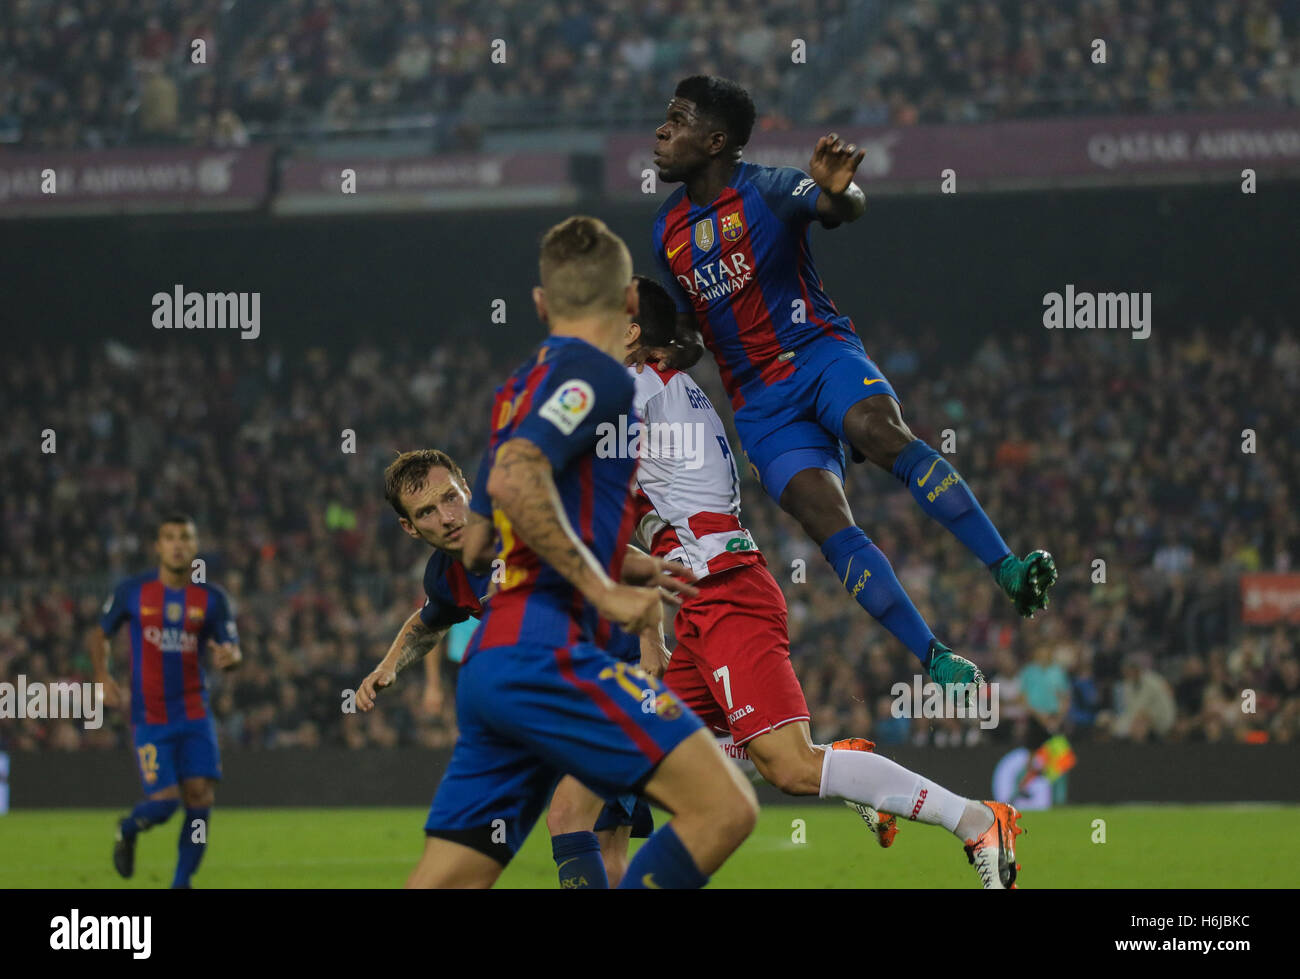 Big jump of Samuel Umtiti. FC Barcelona defeated Granada 1-0 with goal scored by Rafinha at the 47th minute. Liga - Stock Image